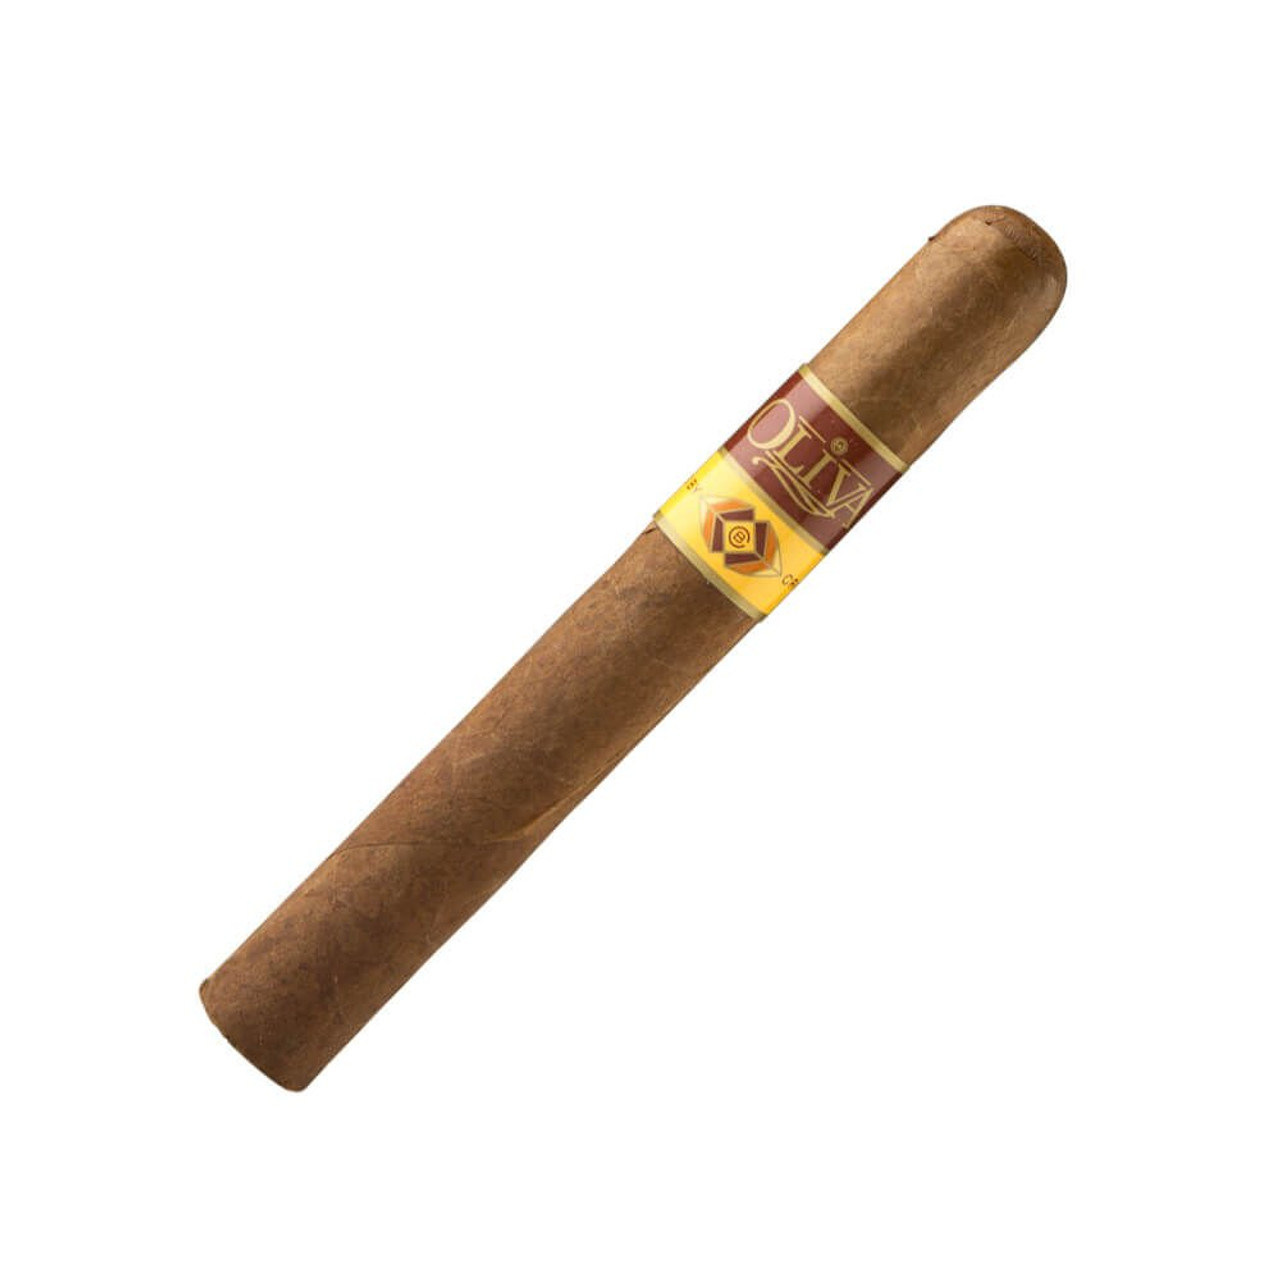 Crafted by Oliva Toro Cigars - 6 x 50 (Box of 10)